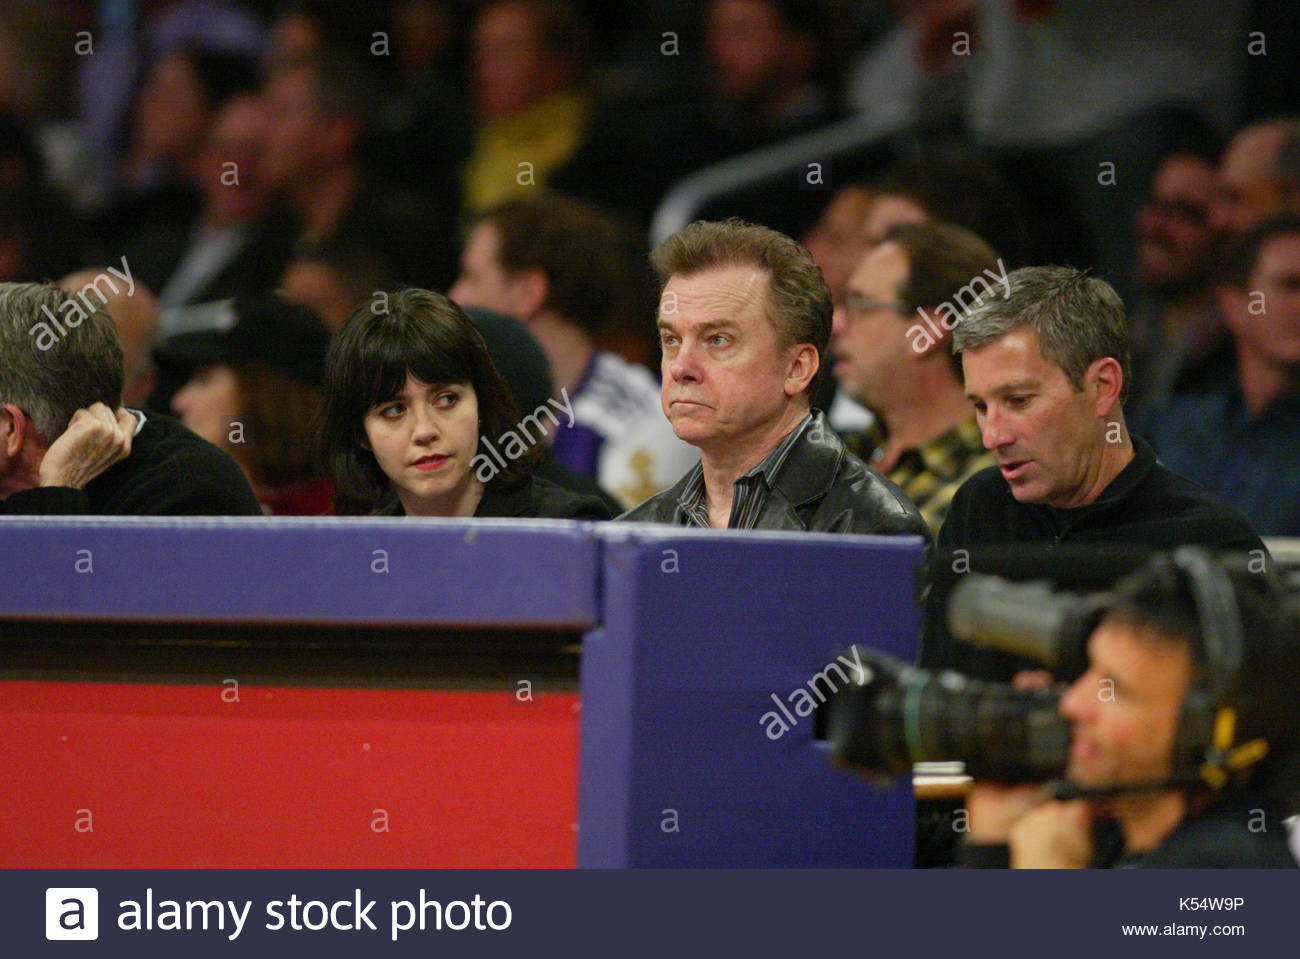 Michael O'Keefe. Michael O'Keefe watching the LA Lakers game. The Houston Rockets defeated the Los Angeles - Stock Image